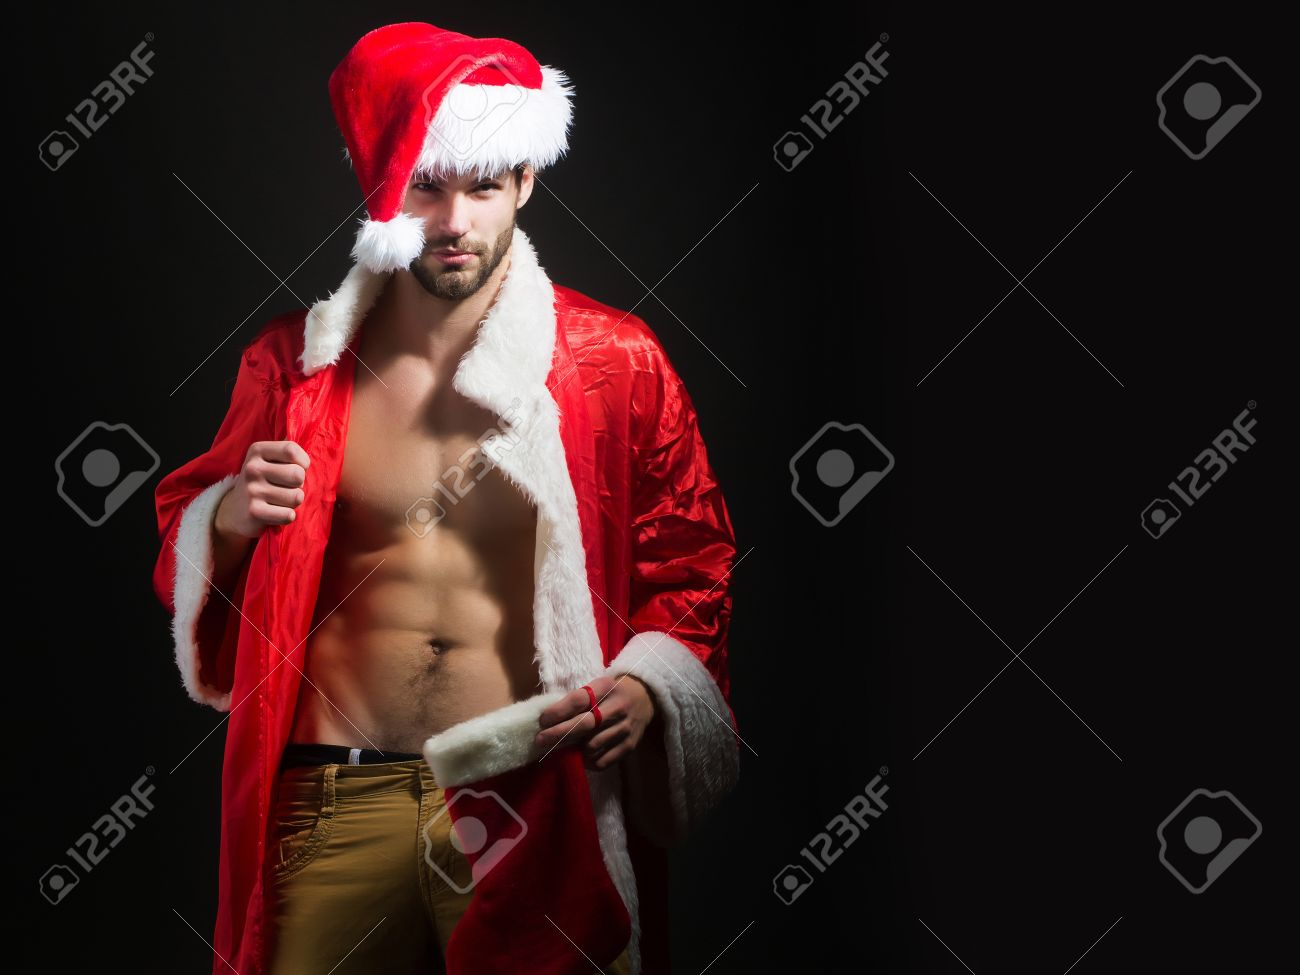 Christmas Model.Handsome Santa Claus Guy Sexy Young Bearded Macho Christmas Man